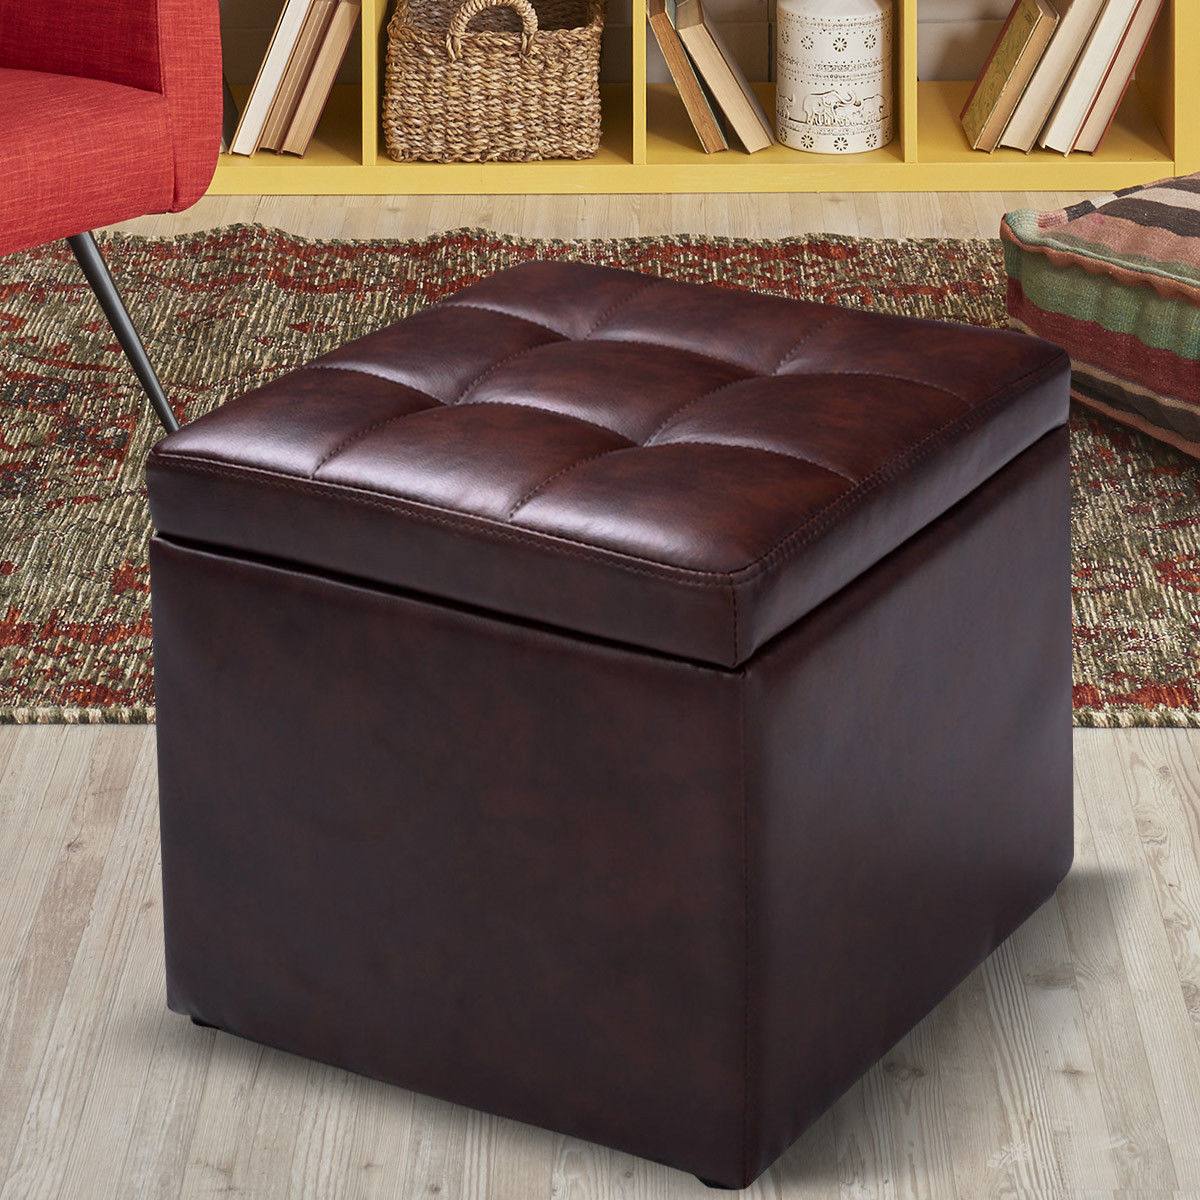 Costway Cube Ottoman Pouffe Storage Box Lounge Seat Footstools with Hinge Top brown by Costway